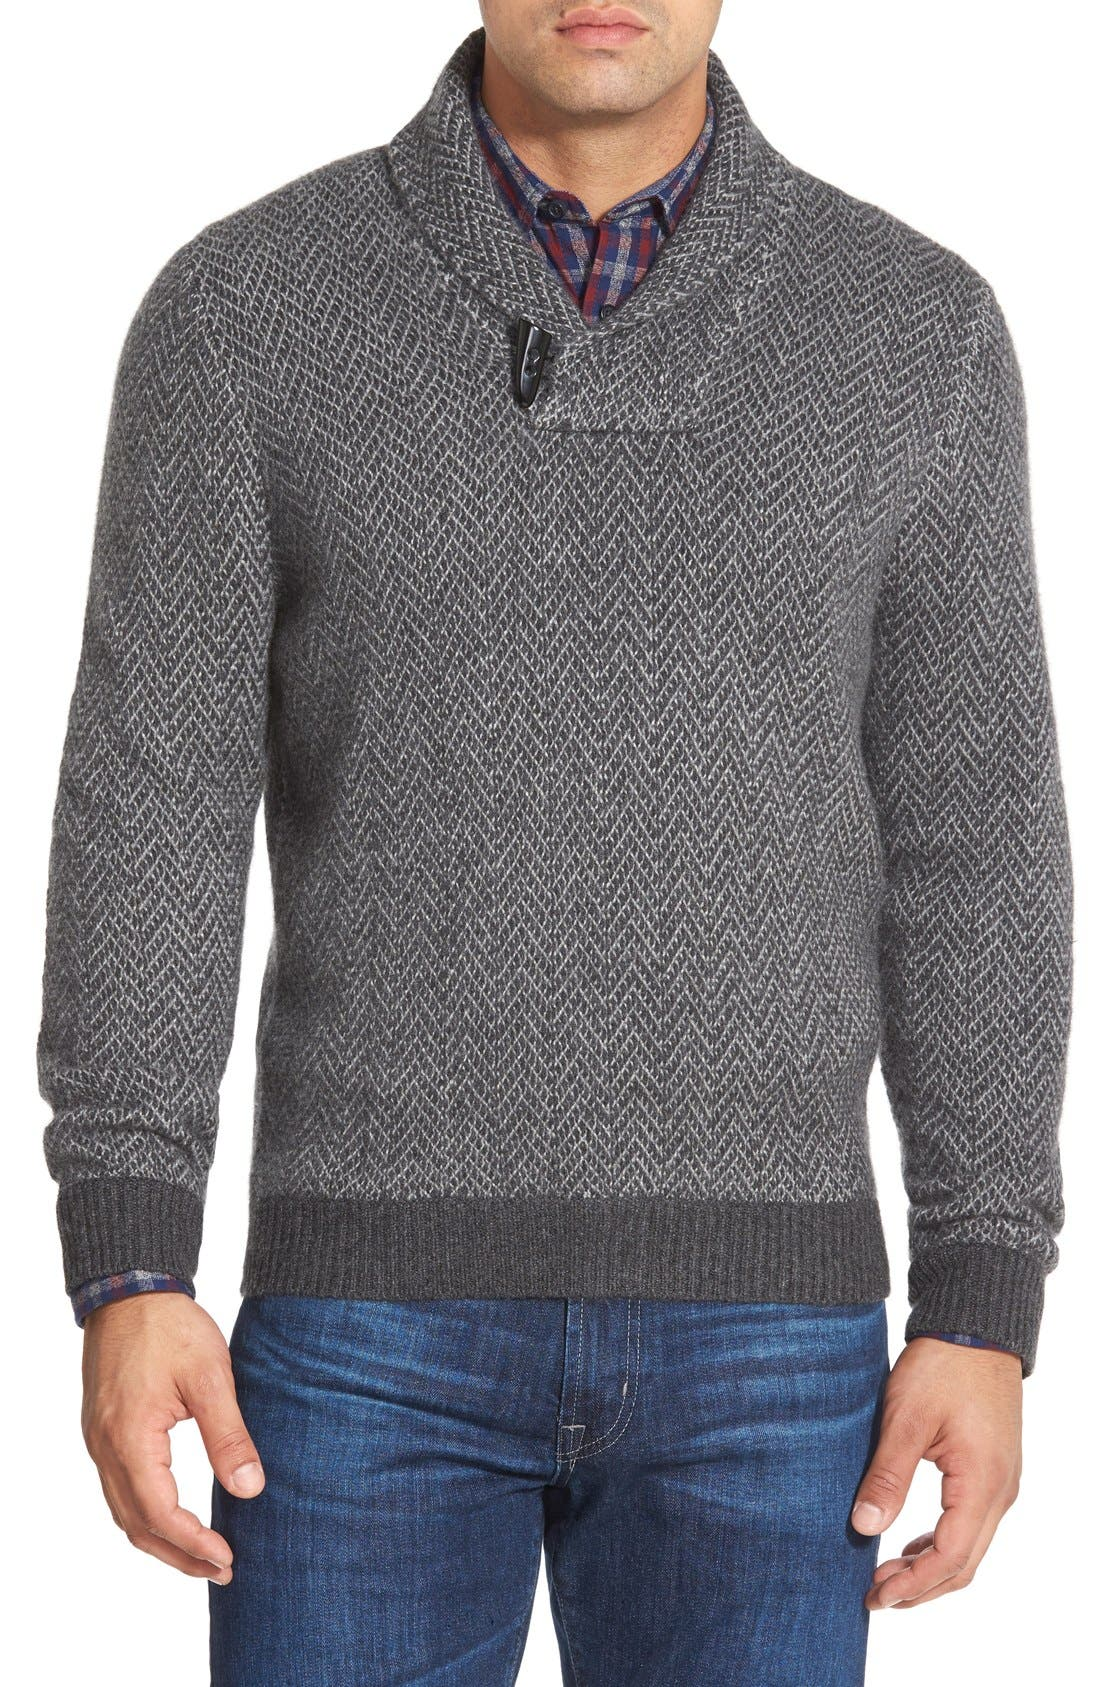 Main Image - John W. Nordstrom® Shawl Collar Cashmere Sweater (Regular & Tall)